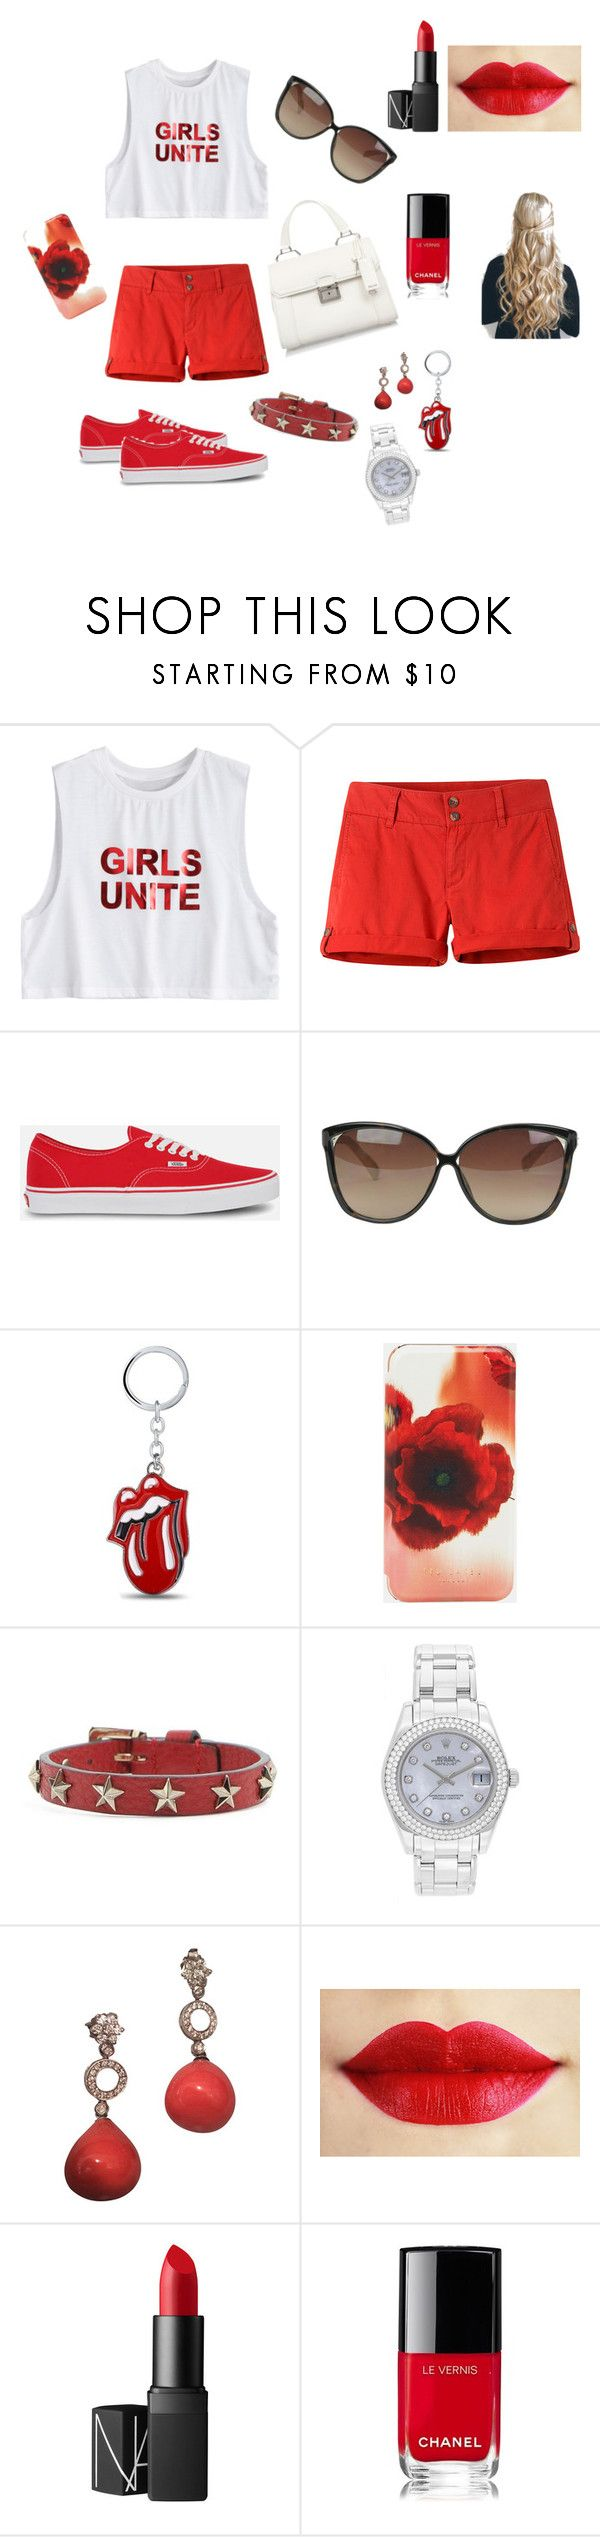 """""""Caitlin: girls night out!"""" by allihelms on Polyvore featuring Mountain Khakis, Vans, Linda Farrow, Ted Baker, RED Valentino, Rolex, NARS Cosmetics, Chanel and Miu Miu"""